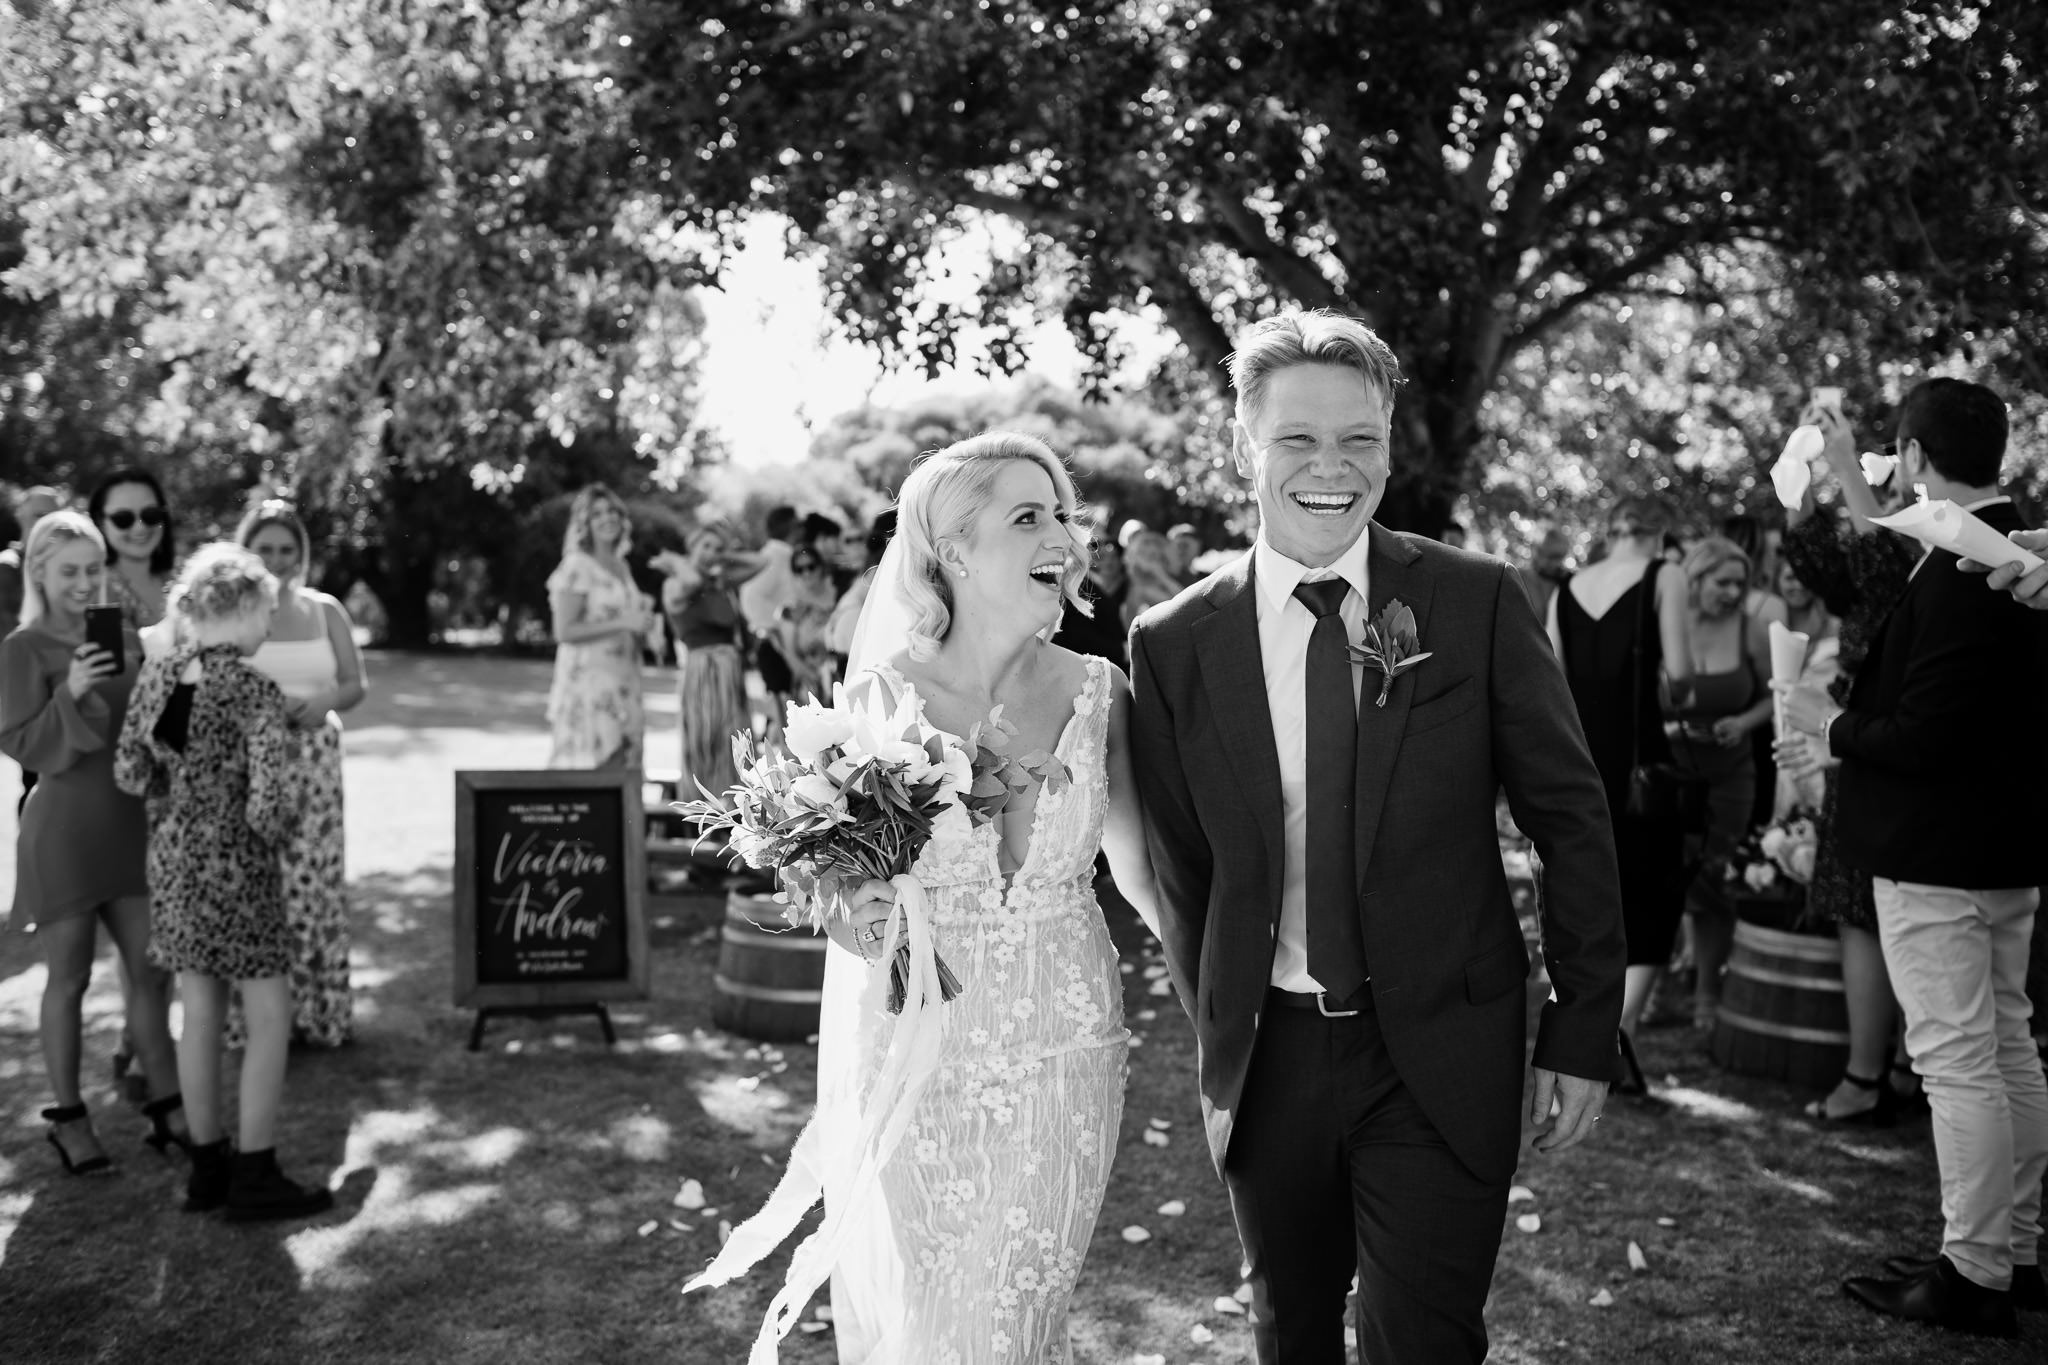 Black and white photo of bride and groom laughing as they walk back up the aisle at the wedding at Old Broadwater Farm in Busselton